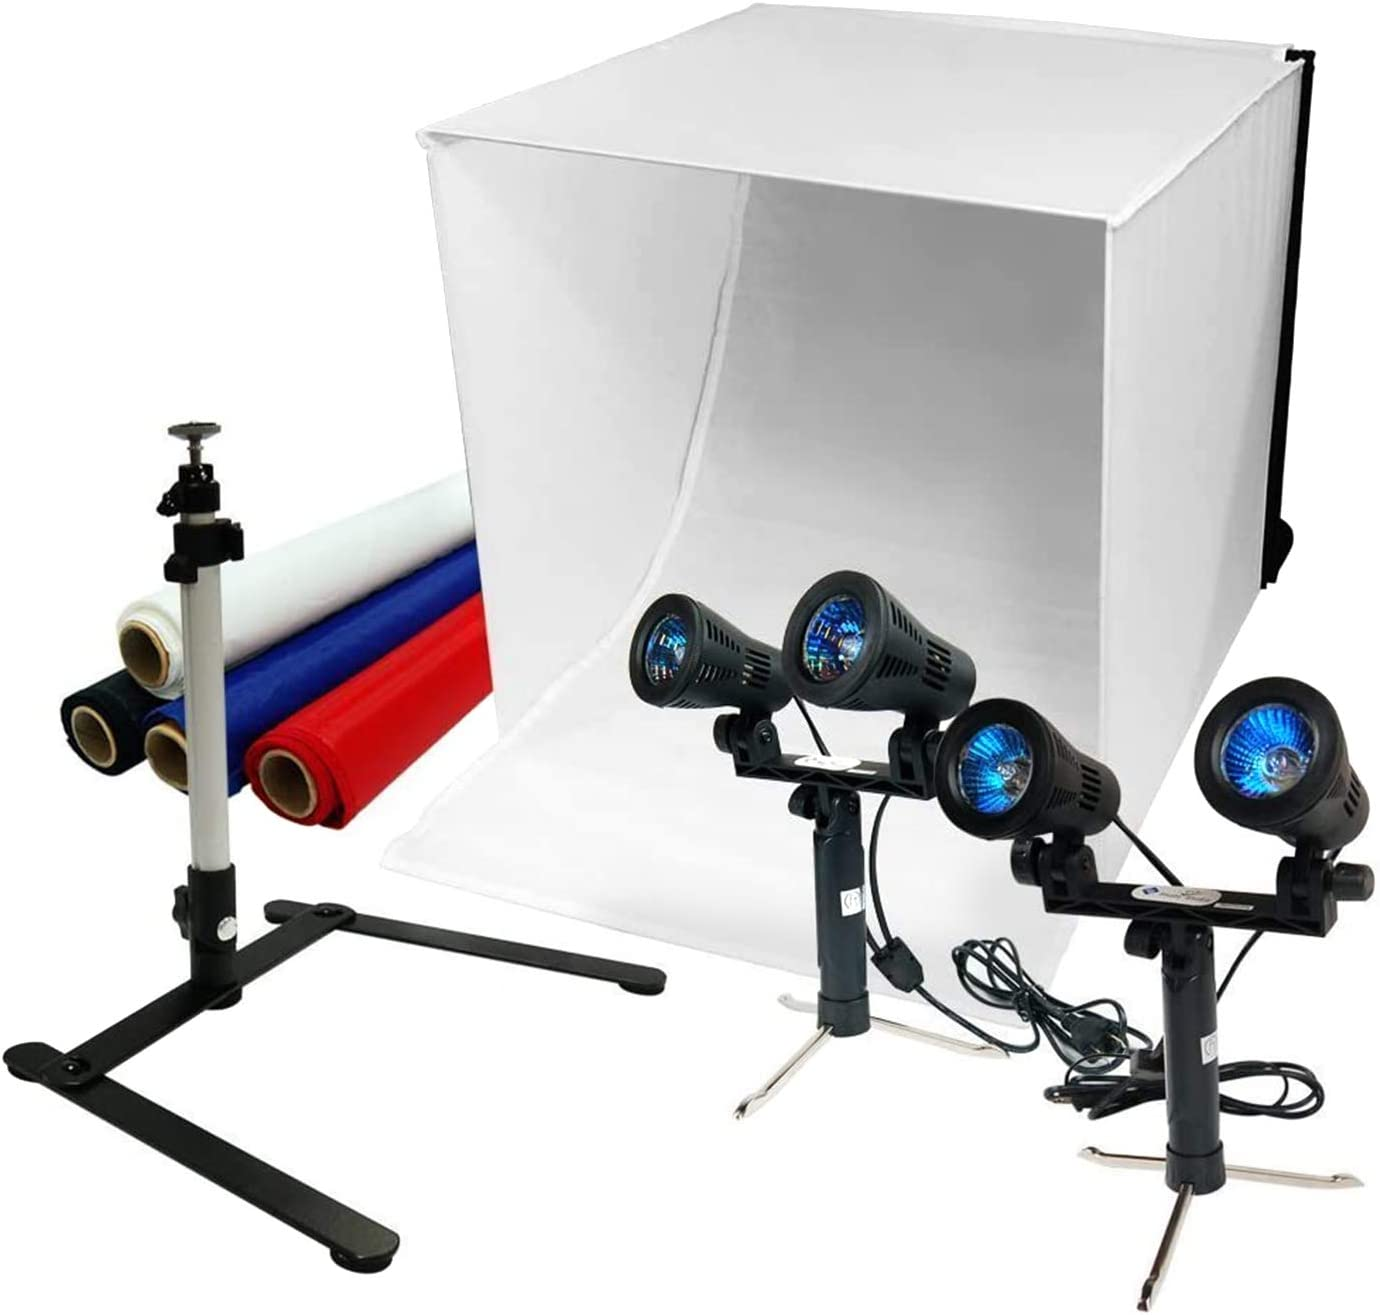 LimoStudio 2 x 50W Light Photography Table Top Photo Studio Lighting Kit for Photo Tent Soft Box AGG1705